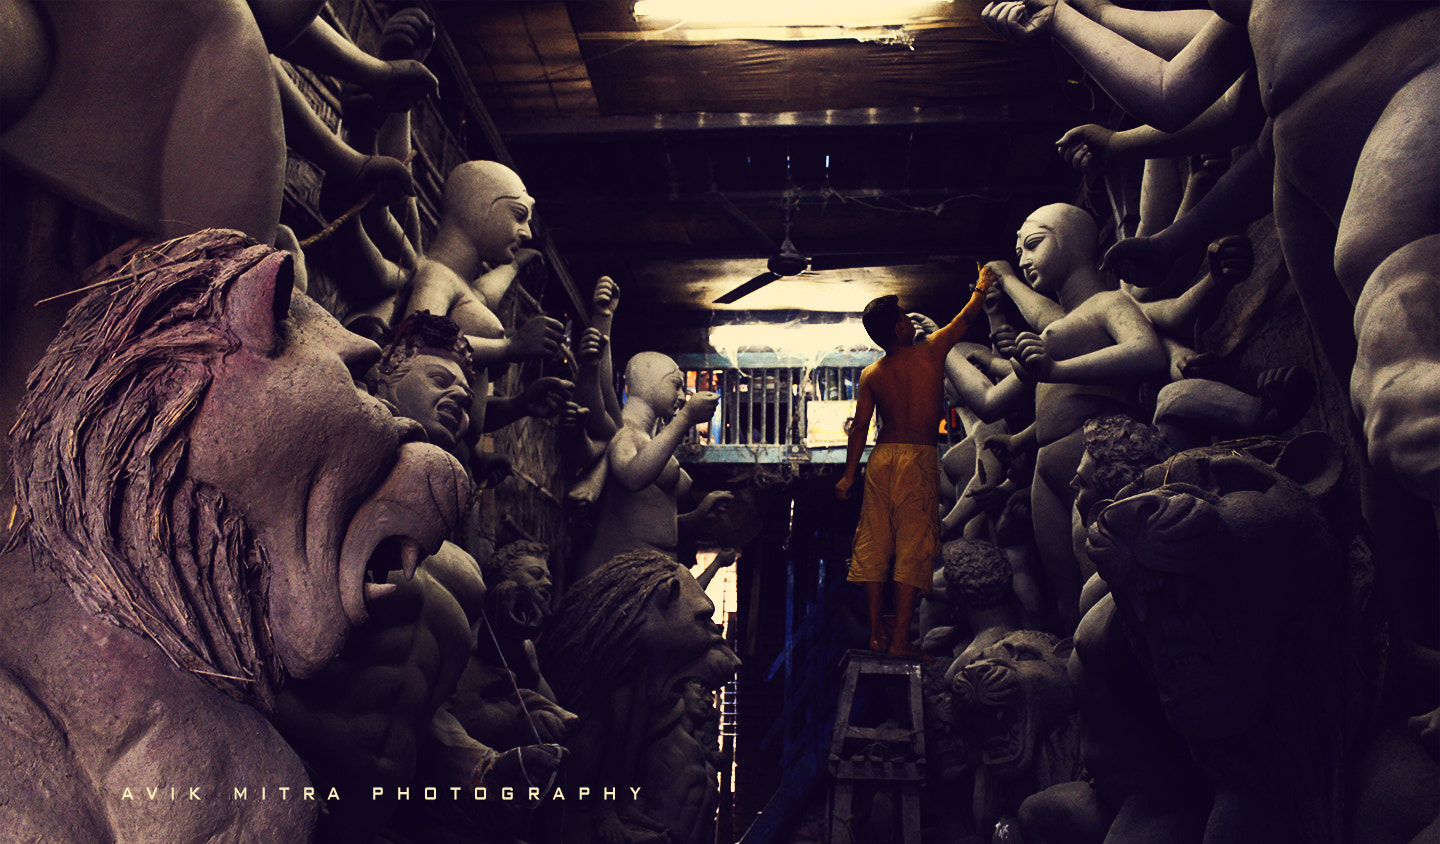 Photograph Art by Avik Mitra on 500px